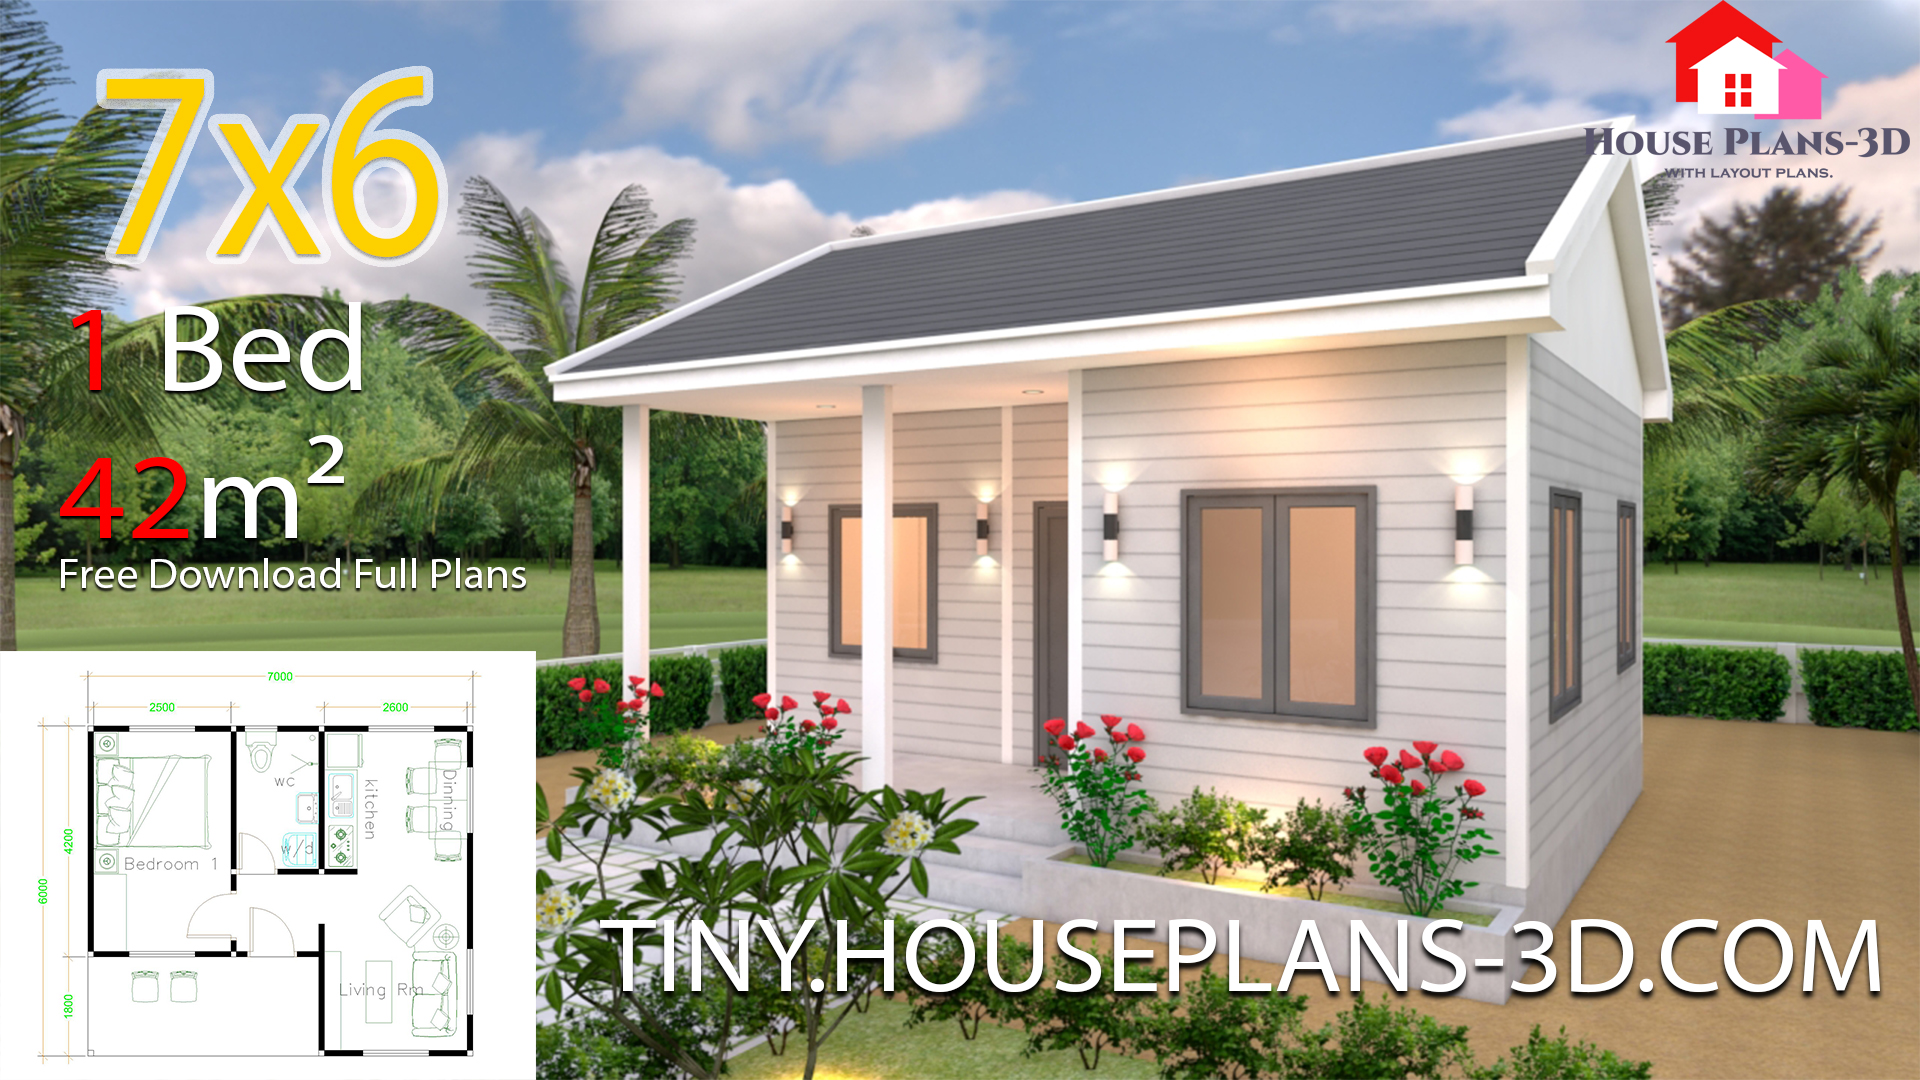 House Plans 7x6 With One Bedroom Gable Roof Samphoas Plan